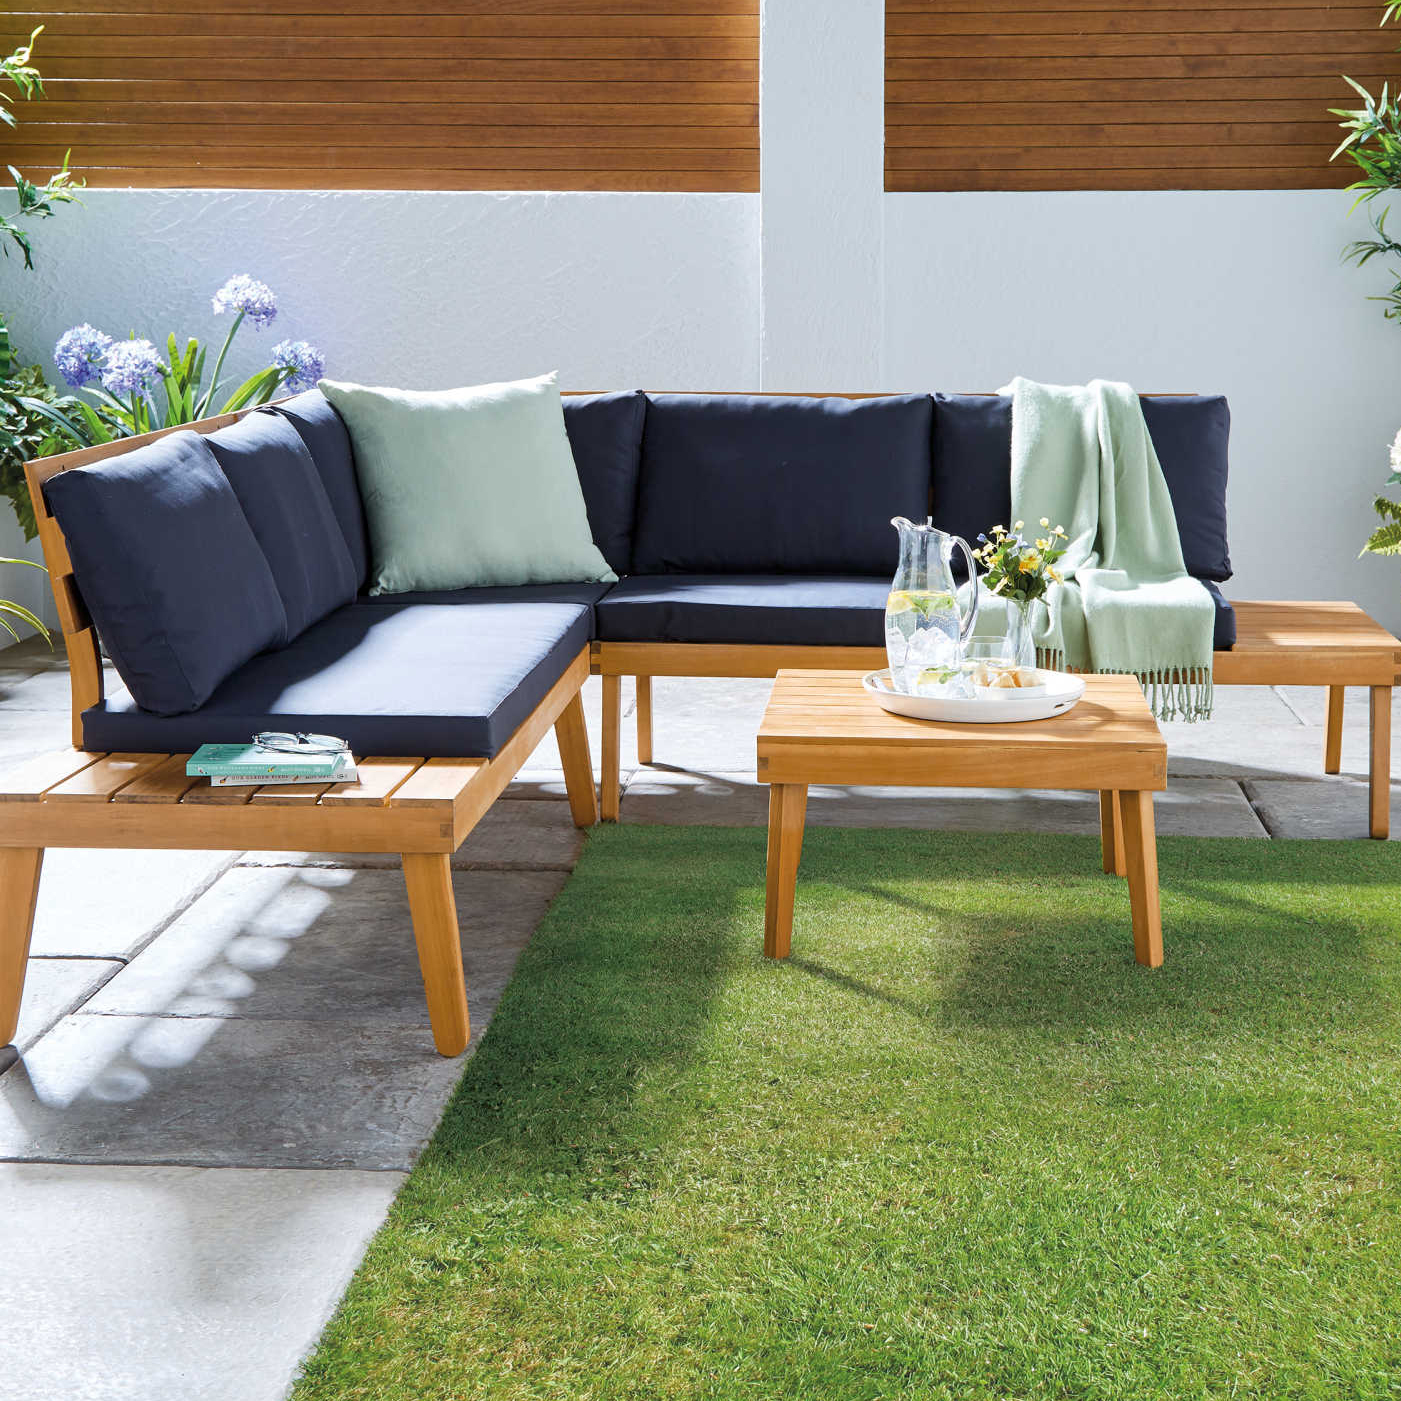 Bargain garden furniture you can get delivered to your door